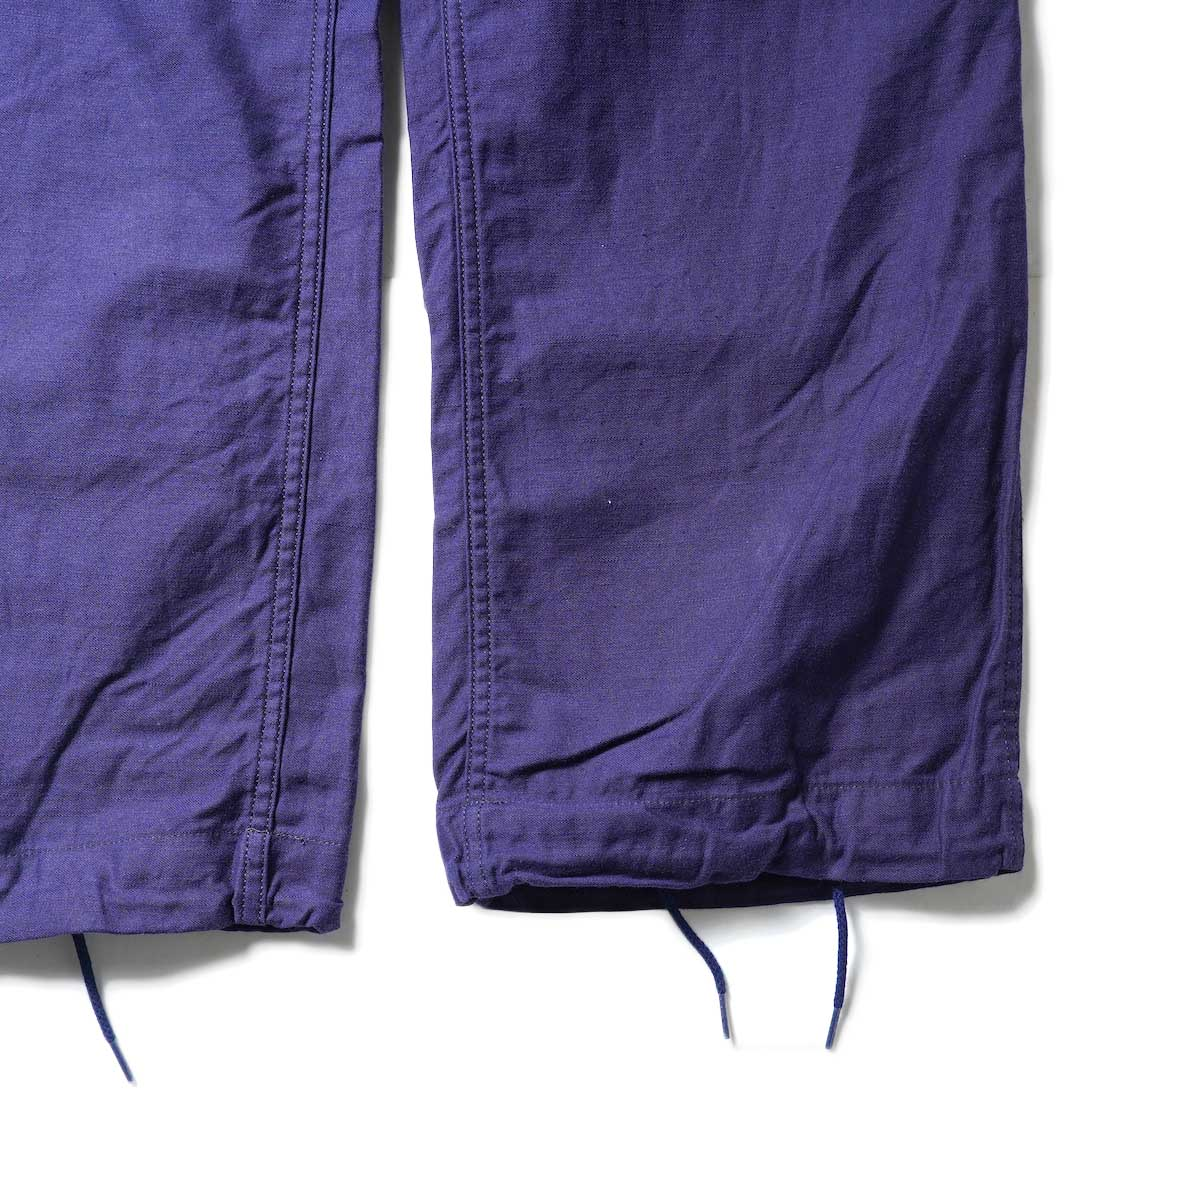 Needles / STRING FATIGUE PANT - BACK SATEEN (Navy)裾